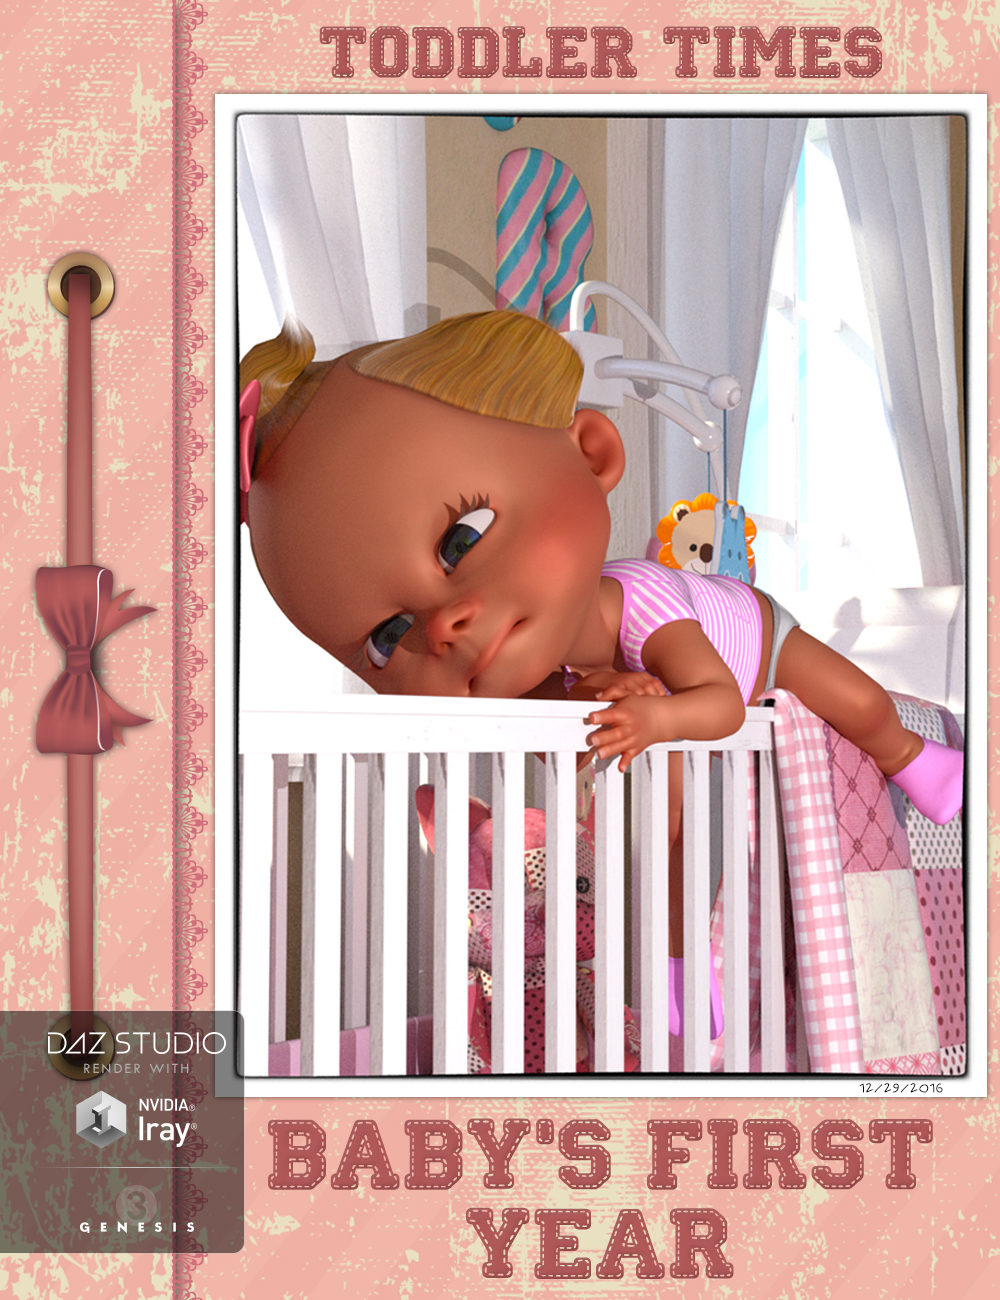 Toddler Time: Poses for the 3D Universe Toon Generation 2 Baby by: Skyewolf, 3D Models by Daz 3D